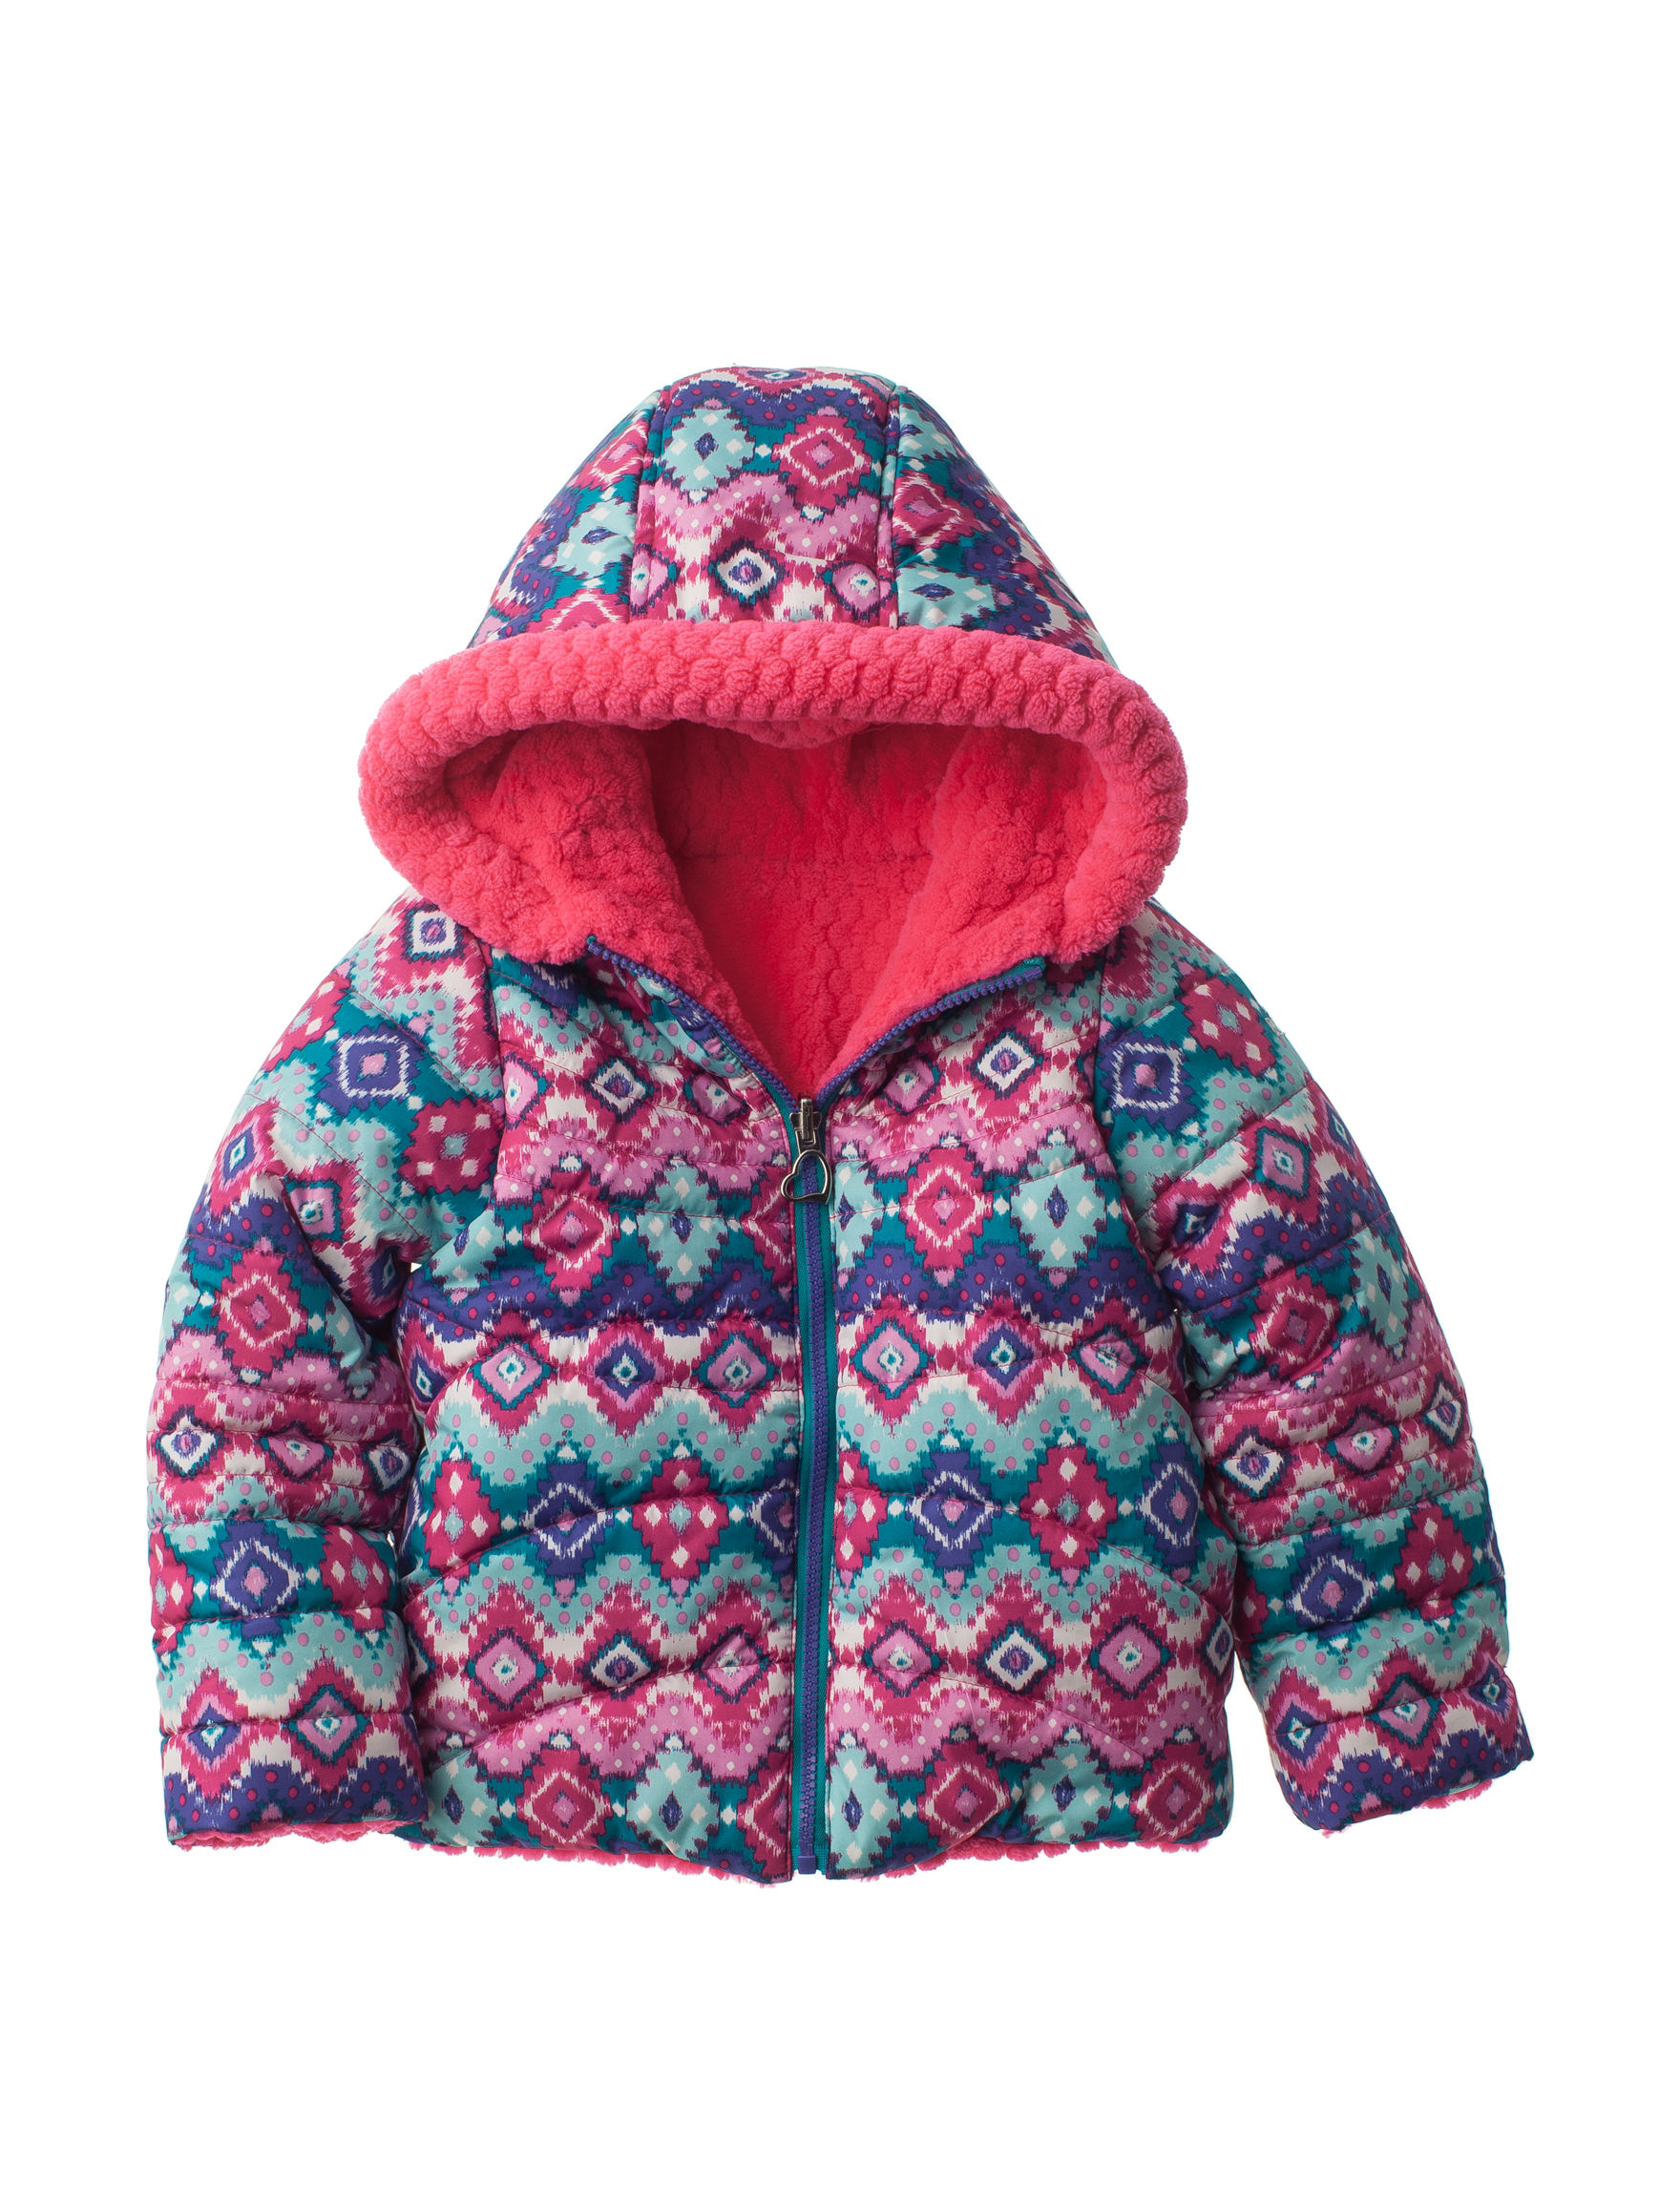 Pacific Trail Pink Fleece & Soft Shell Jackets